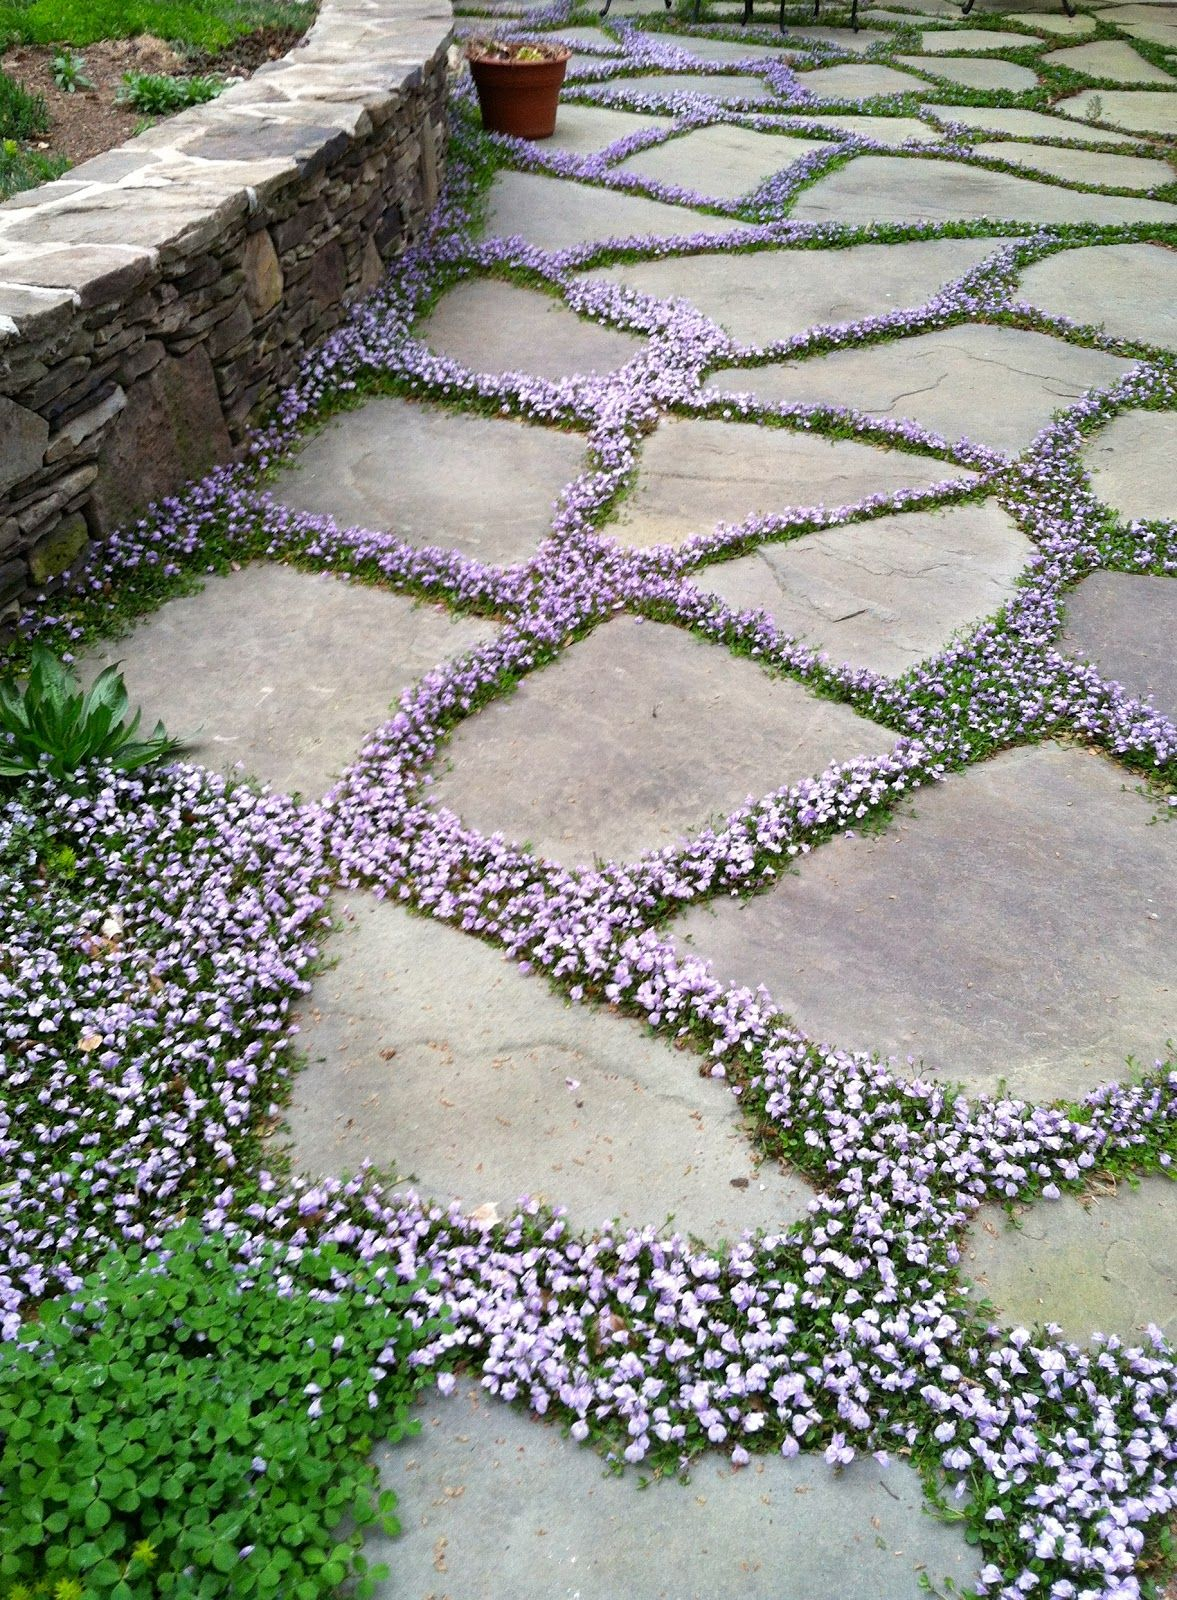 How to plant ground cover between pavers - Love The Idea Of Planting Low Growing Flowering Ground Cover Between Flagstone Pavers I D Use The One In The Picture Mazus Reptans Or Purple Thyme Or